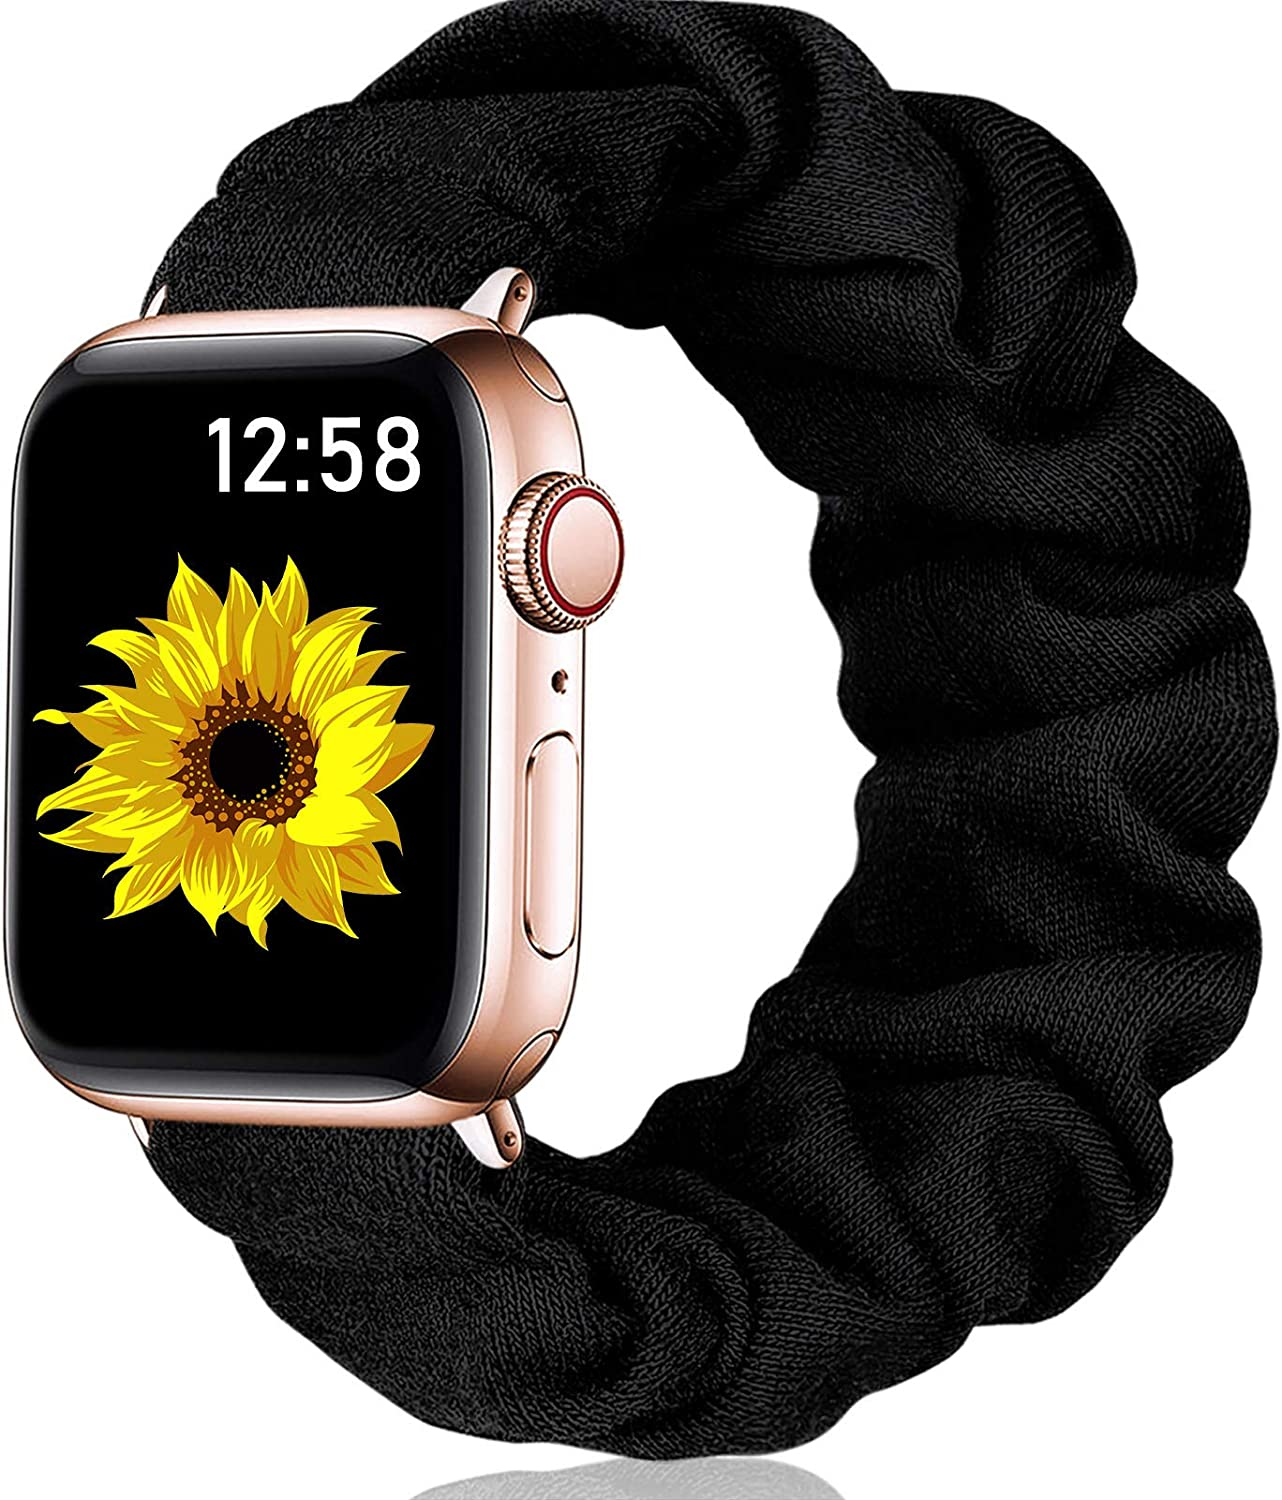 Henva Scrunchies Band Compatible with Apple Watch SE Series 6/5 44mm for Women Grils, Soft Elastic Scrunchy Floral Wristbands Replacement for iWatch 42mm Series 3/2/1, Black, S/M